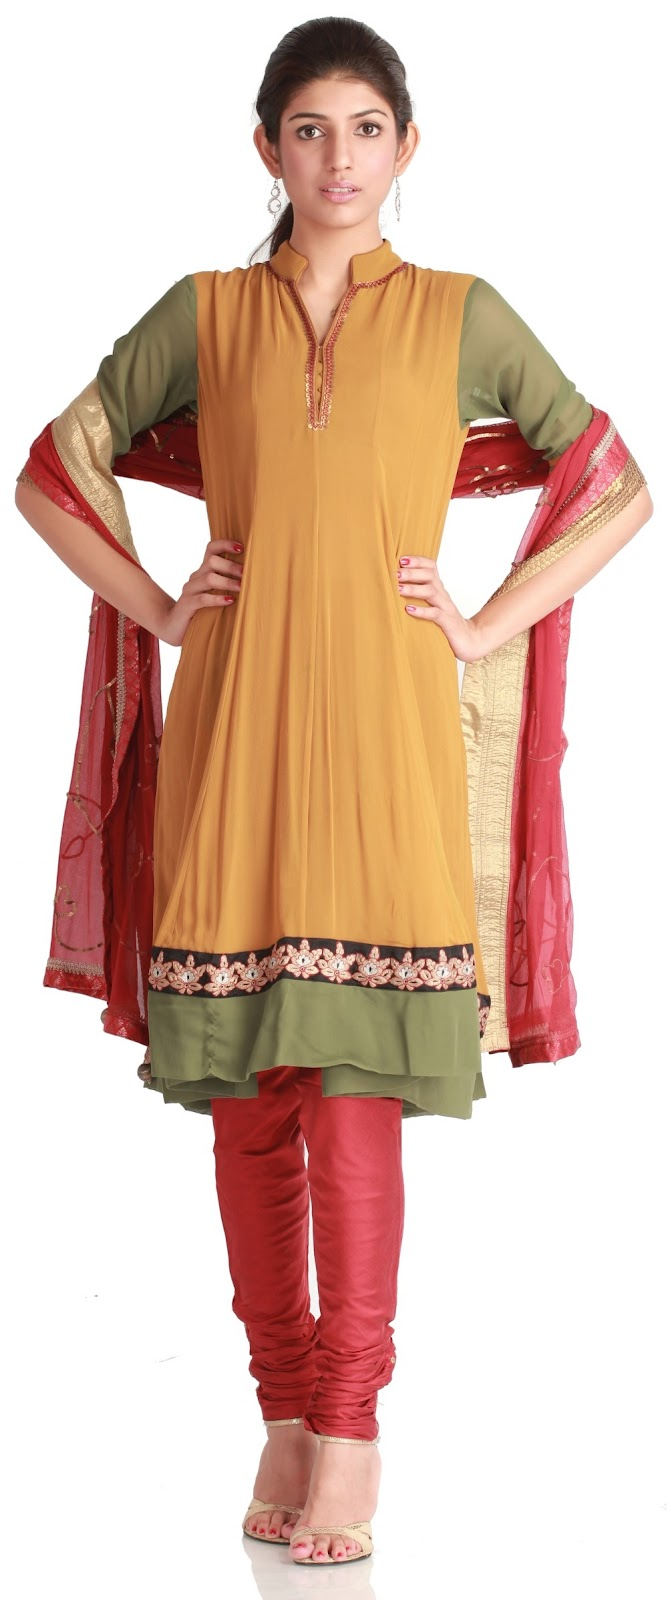 Indian woman dress with pants